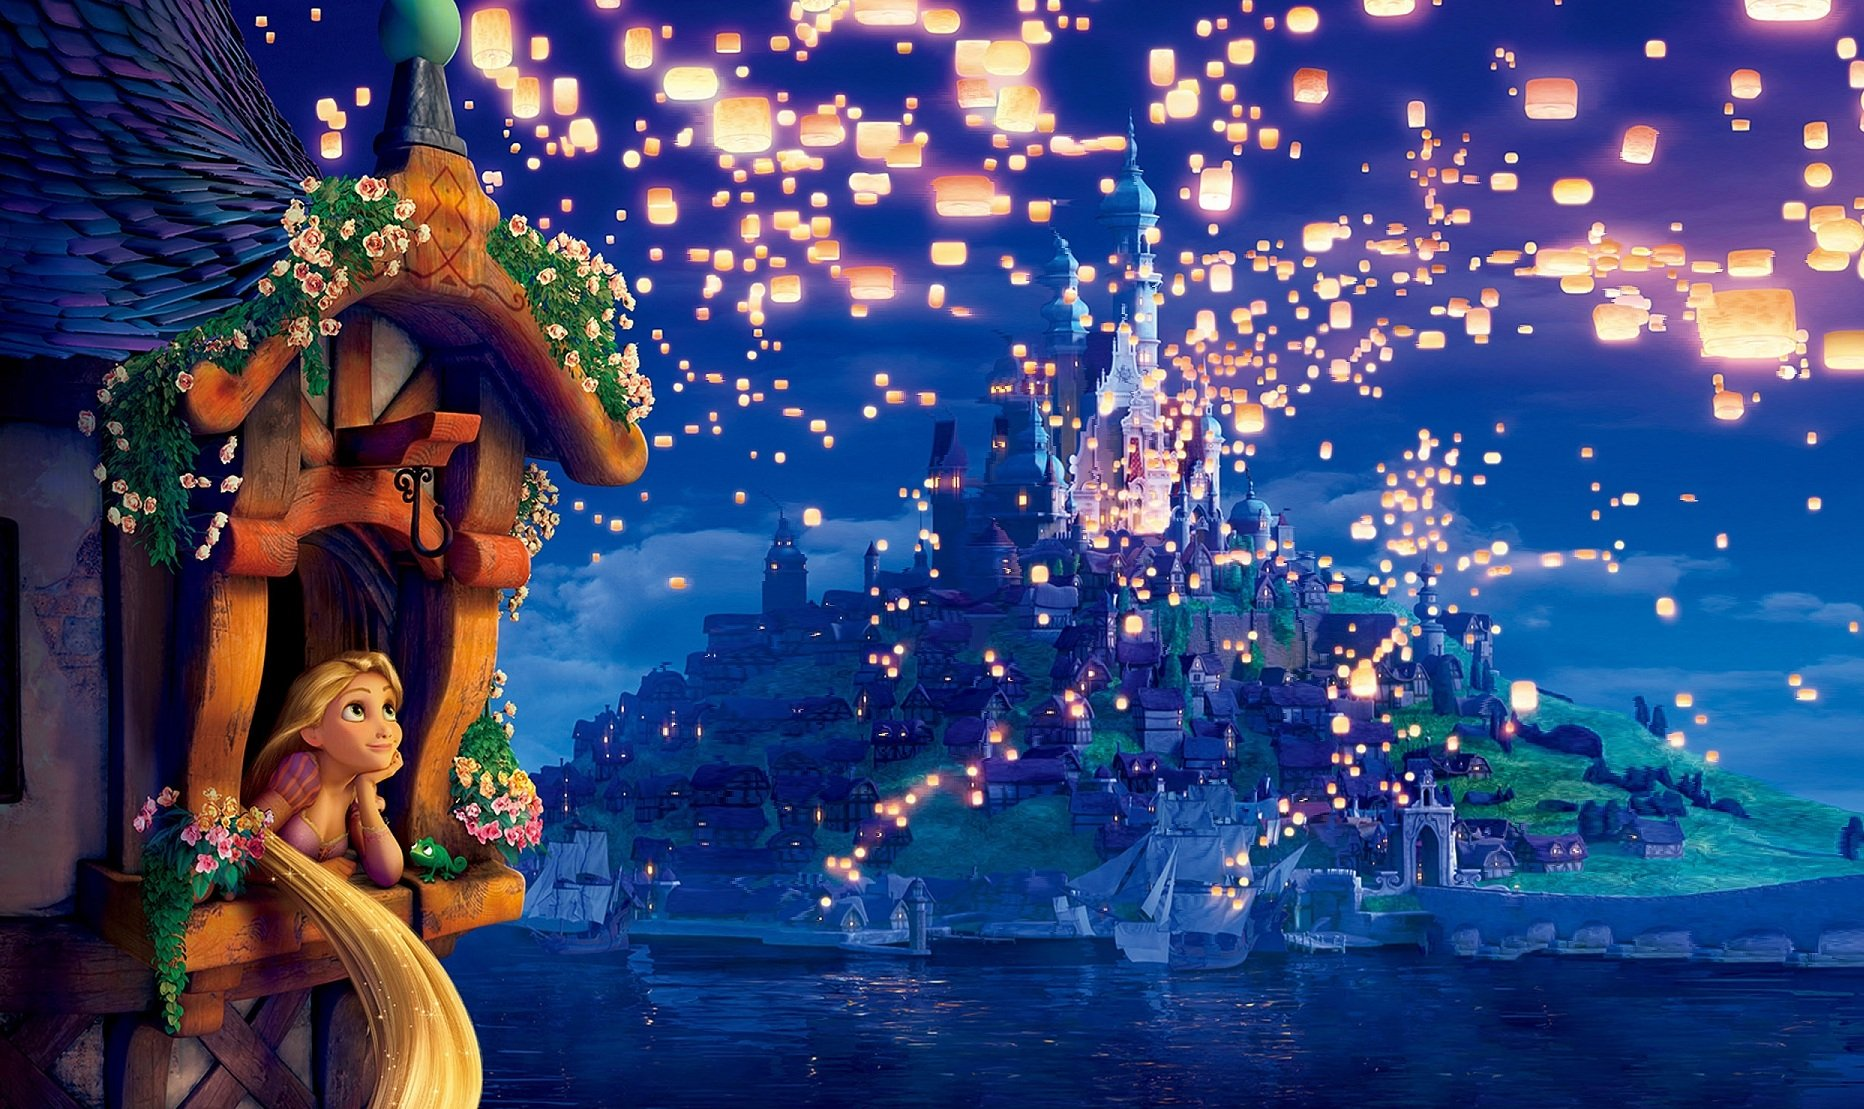 Tangled wallpapers Movie HQ Tangled pictures 4K Wallpapers 2019 1864x1109